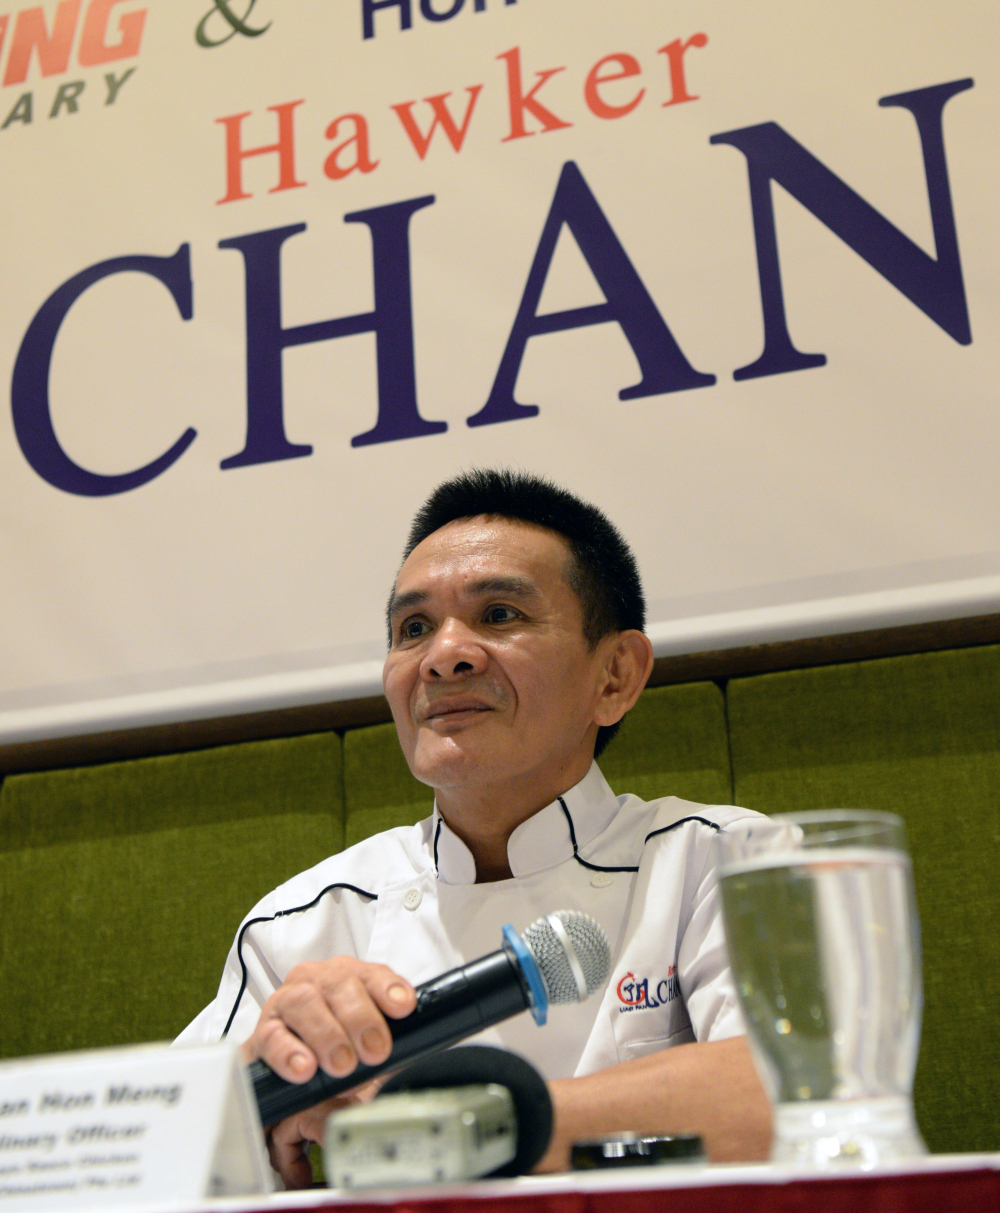 Chef Chan Hon Meng, nicknamed 'Hawker Chan', runs the world's least expensive Michelin-starred restaurant in Singapore. — AFP pic